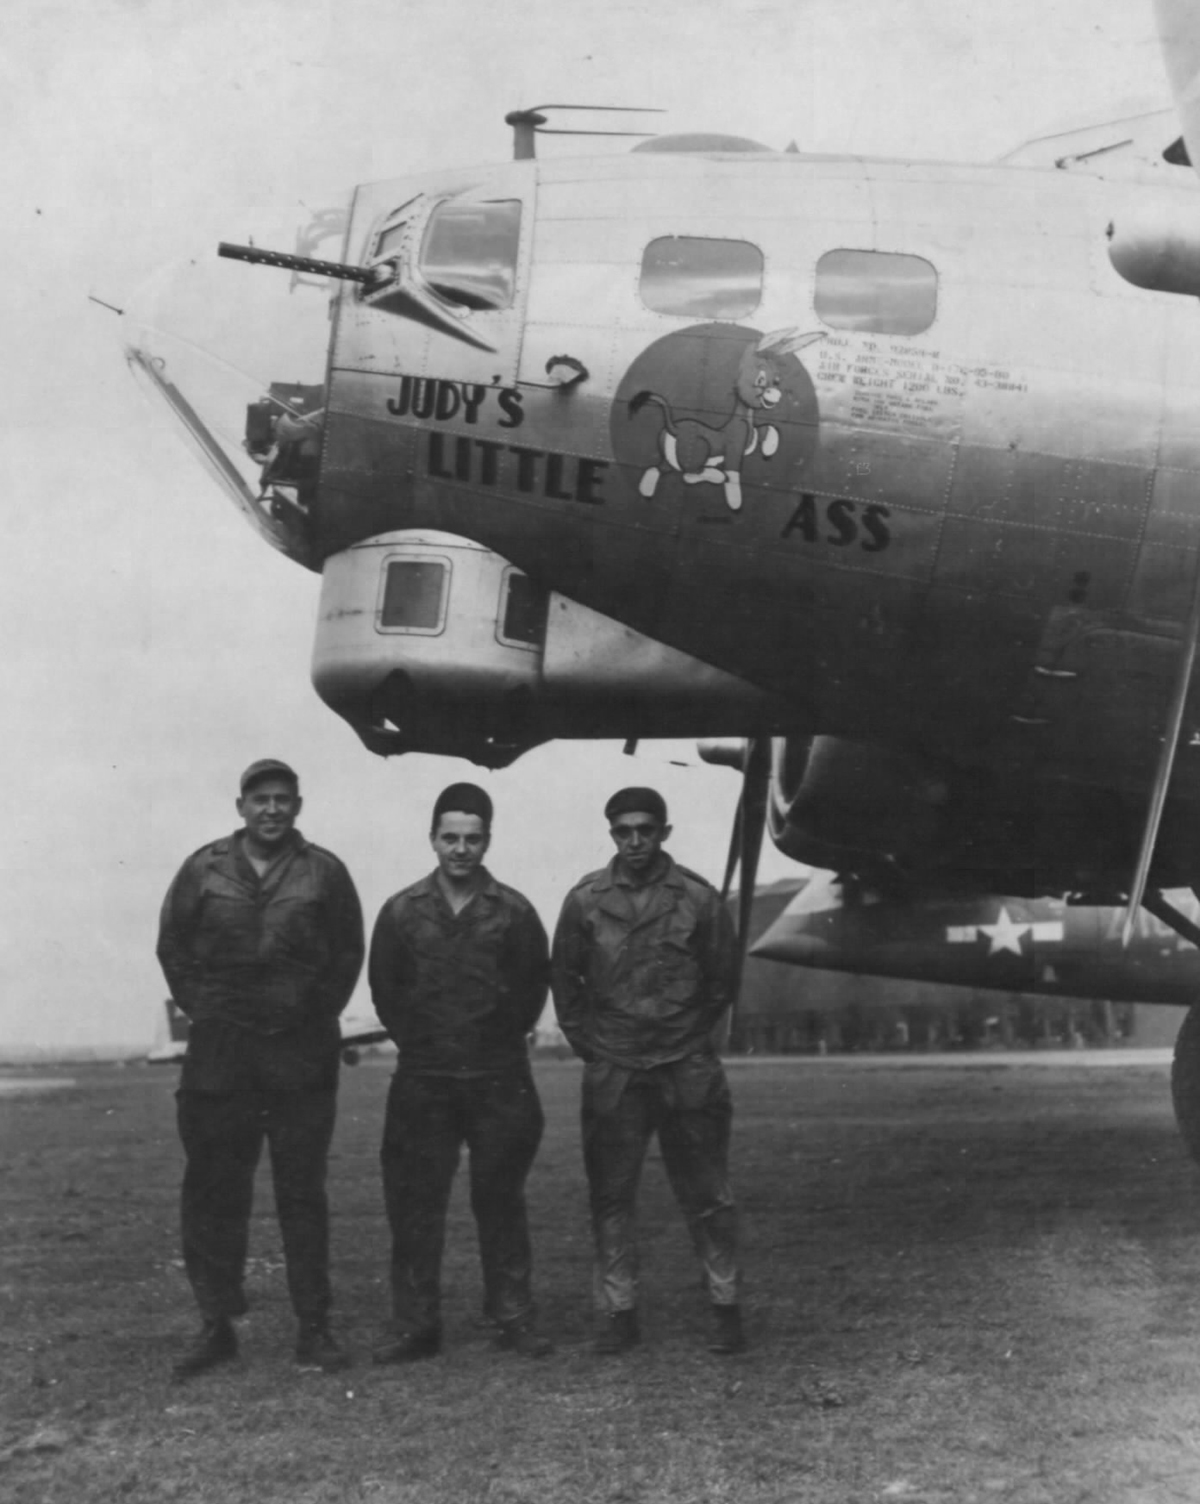 B-17 #43-38841 / Judy's Little Ass